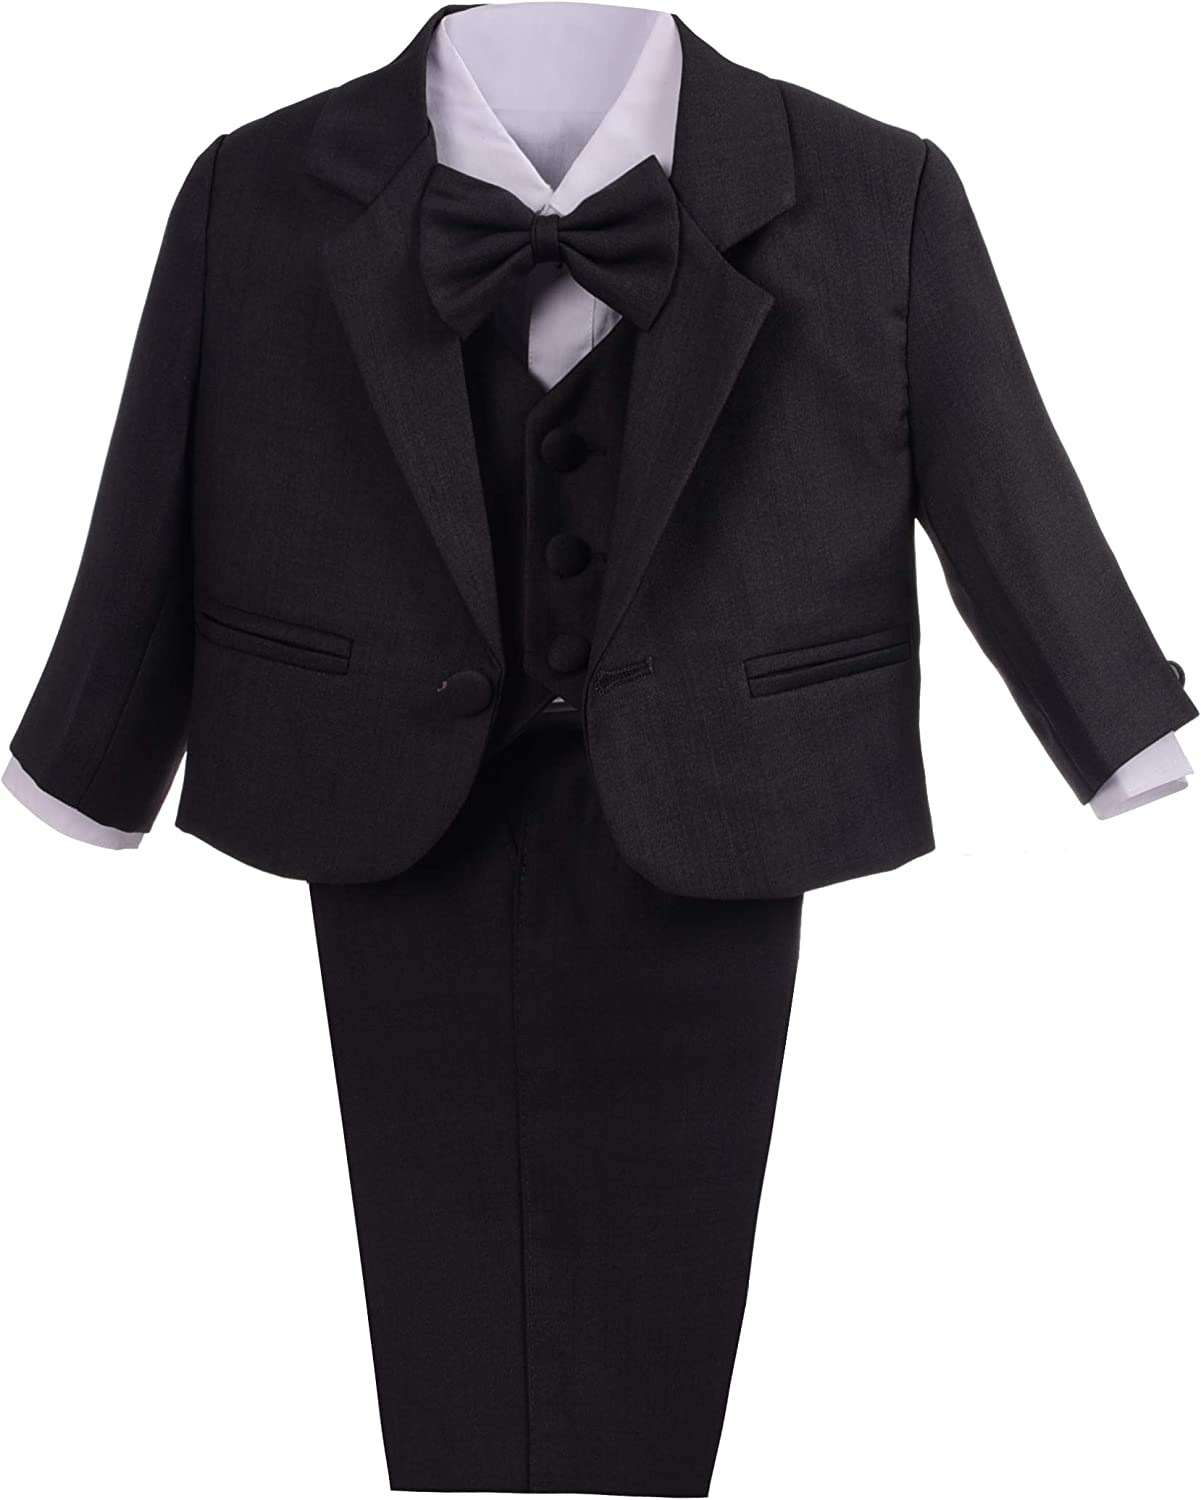 Lito Angels Baby Boys Formal Dress Suits Classic Fit Wedding Suits Outfit 5 Piece Set